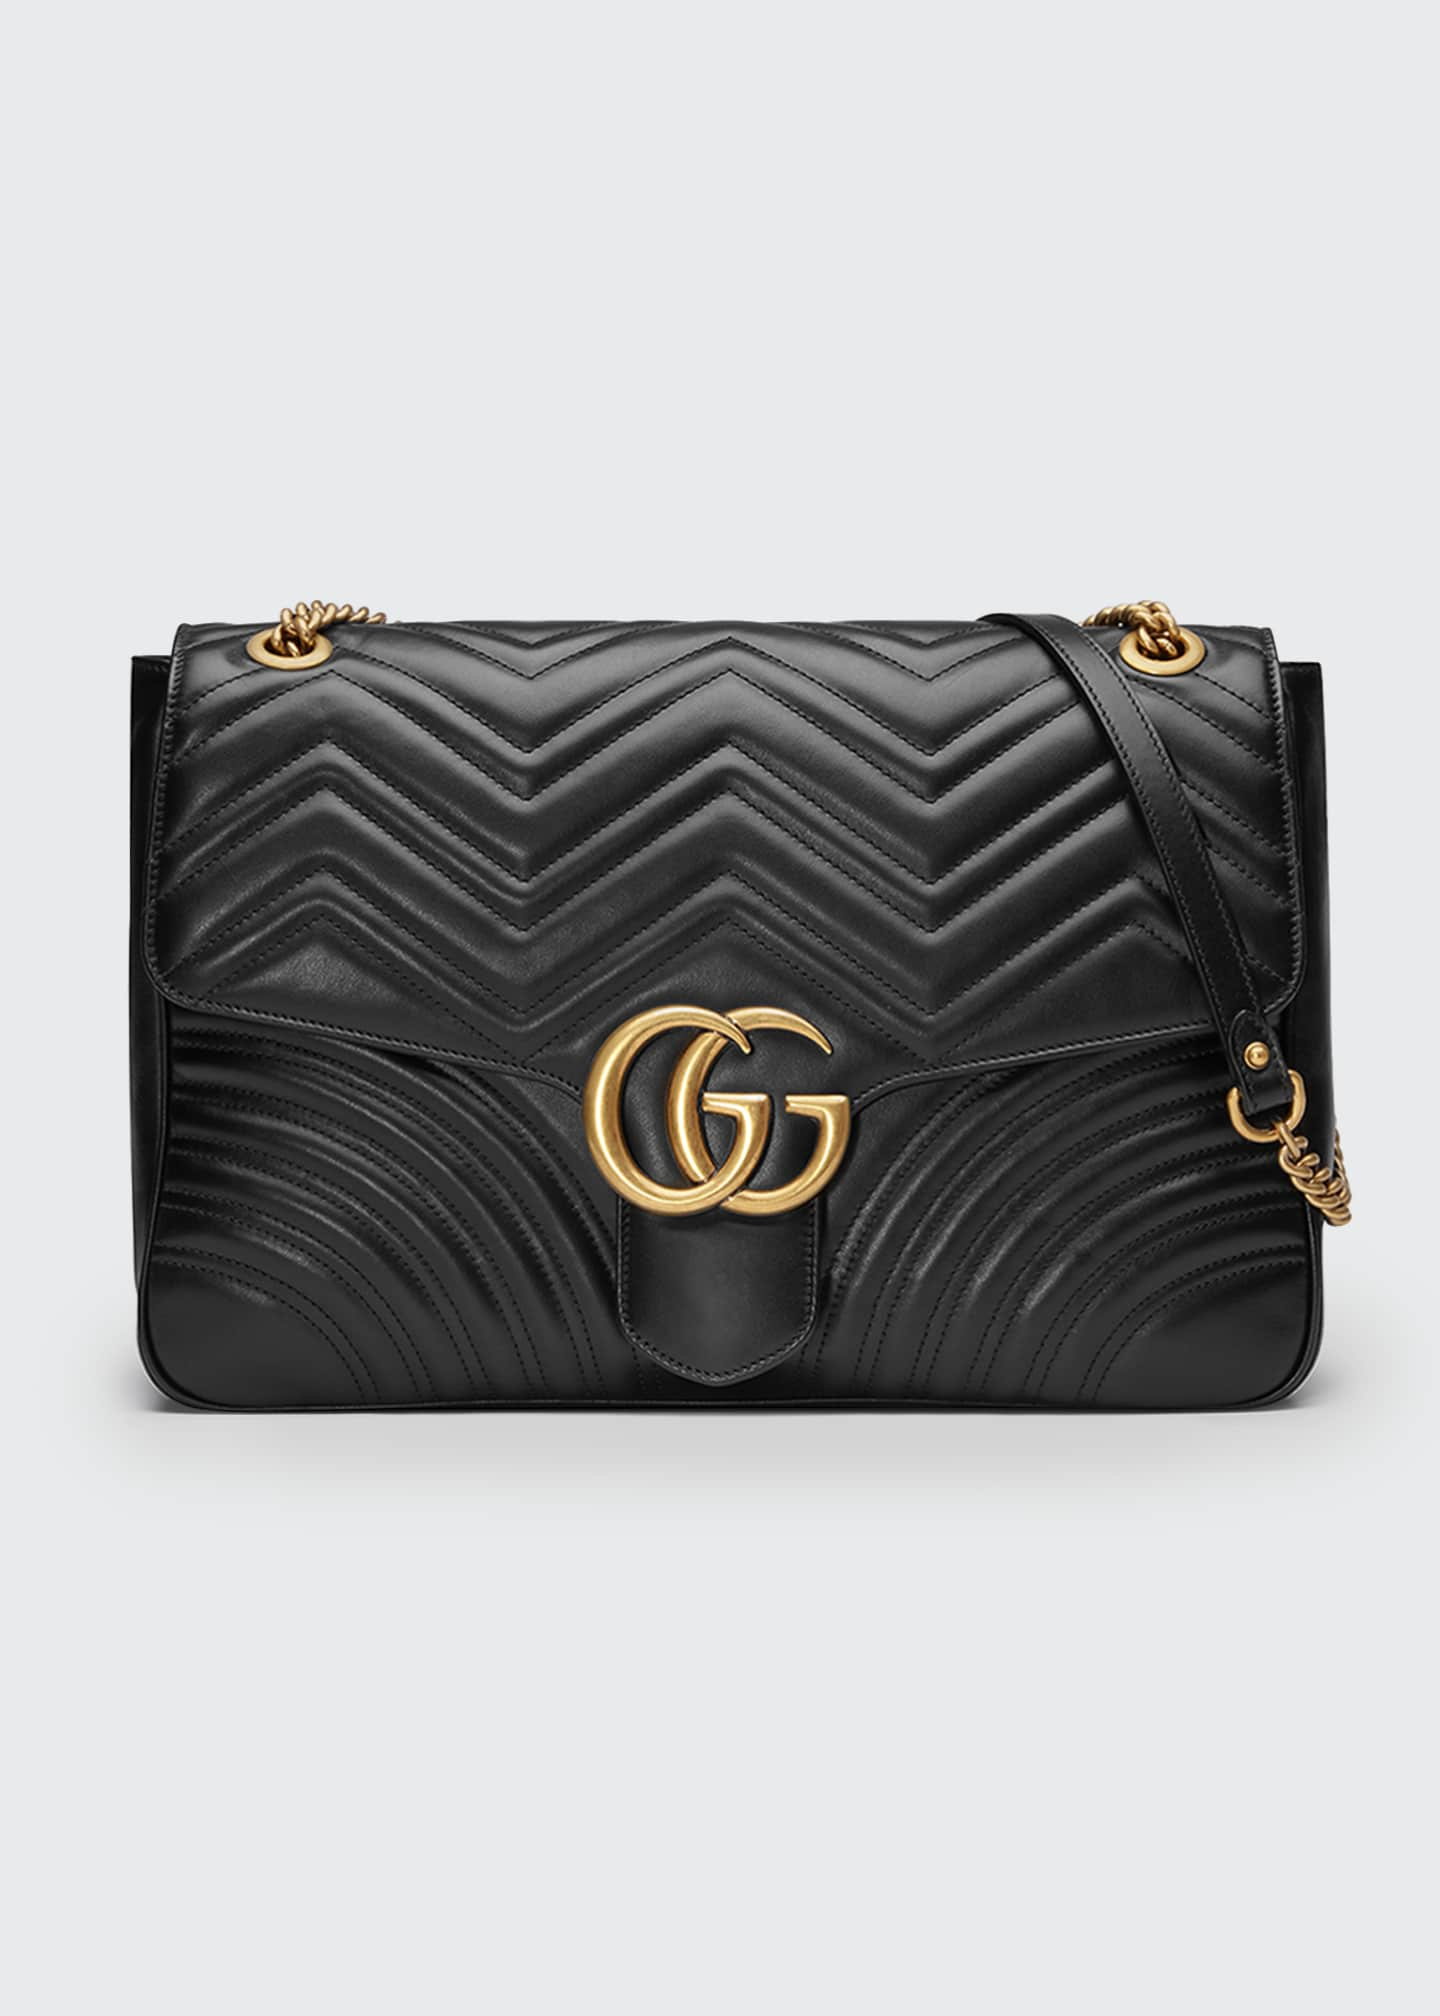 Gucci GG Marmont Large Chevron Quilted Leather Shoulder